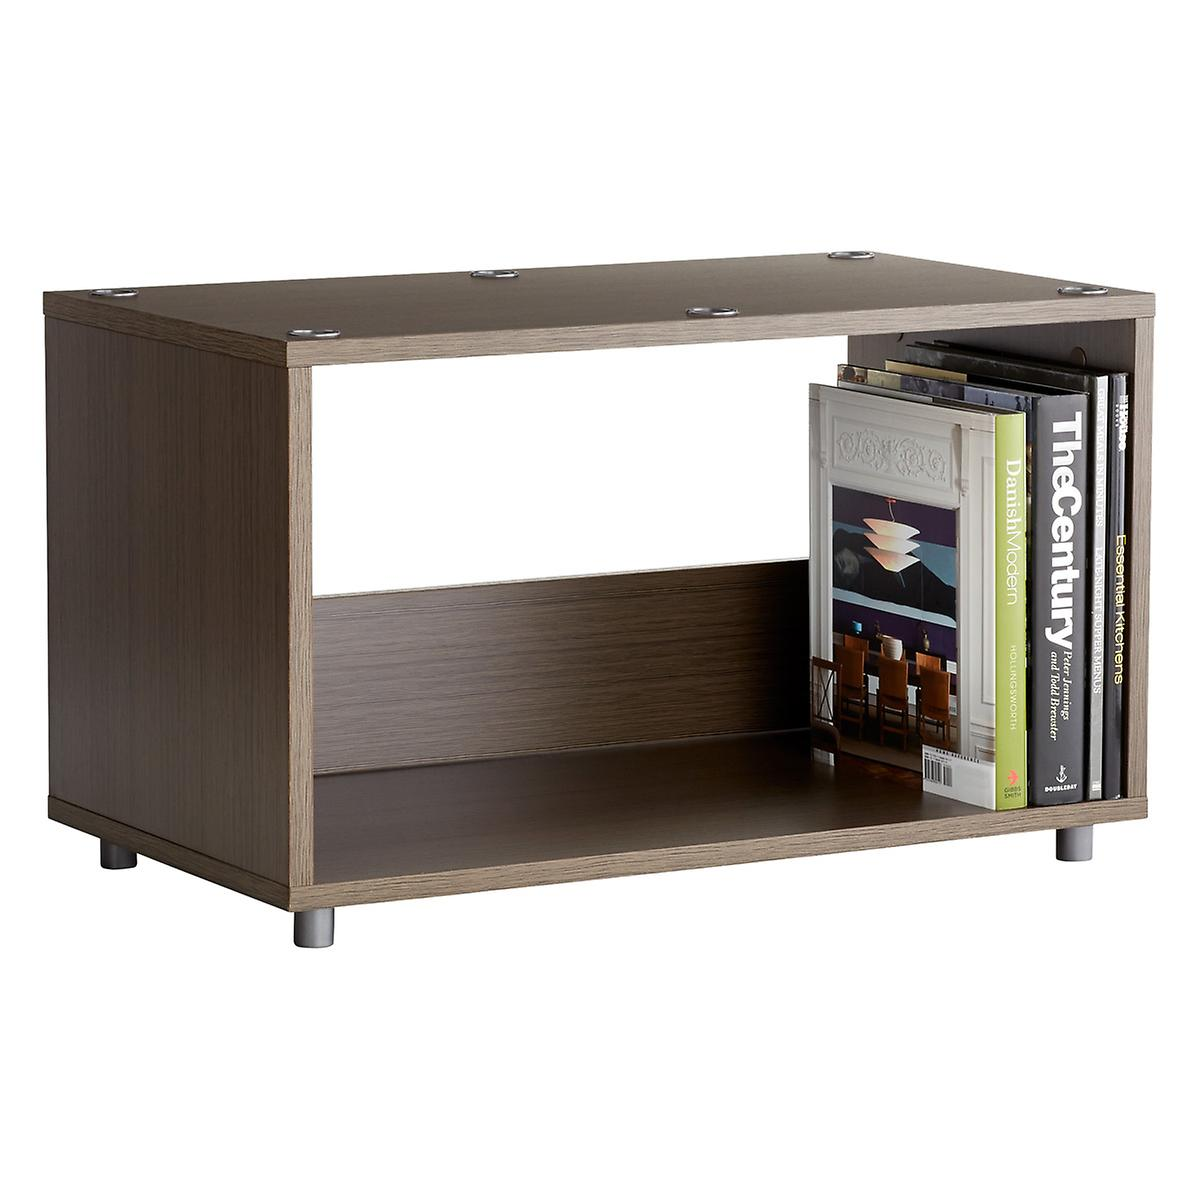 Large Driftwood Vario Stacking Shelf